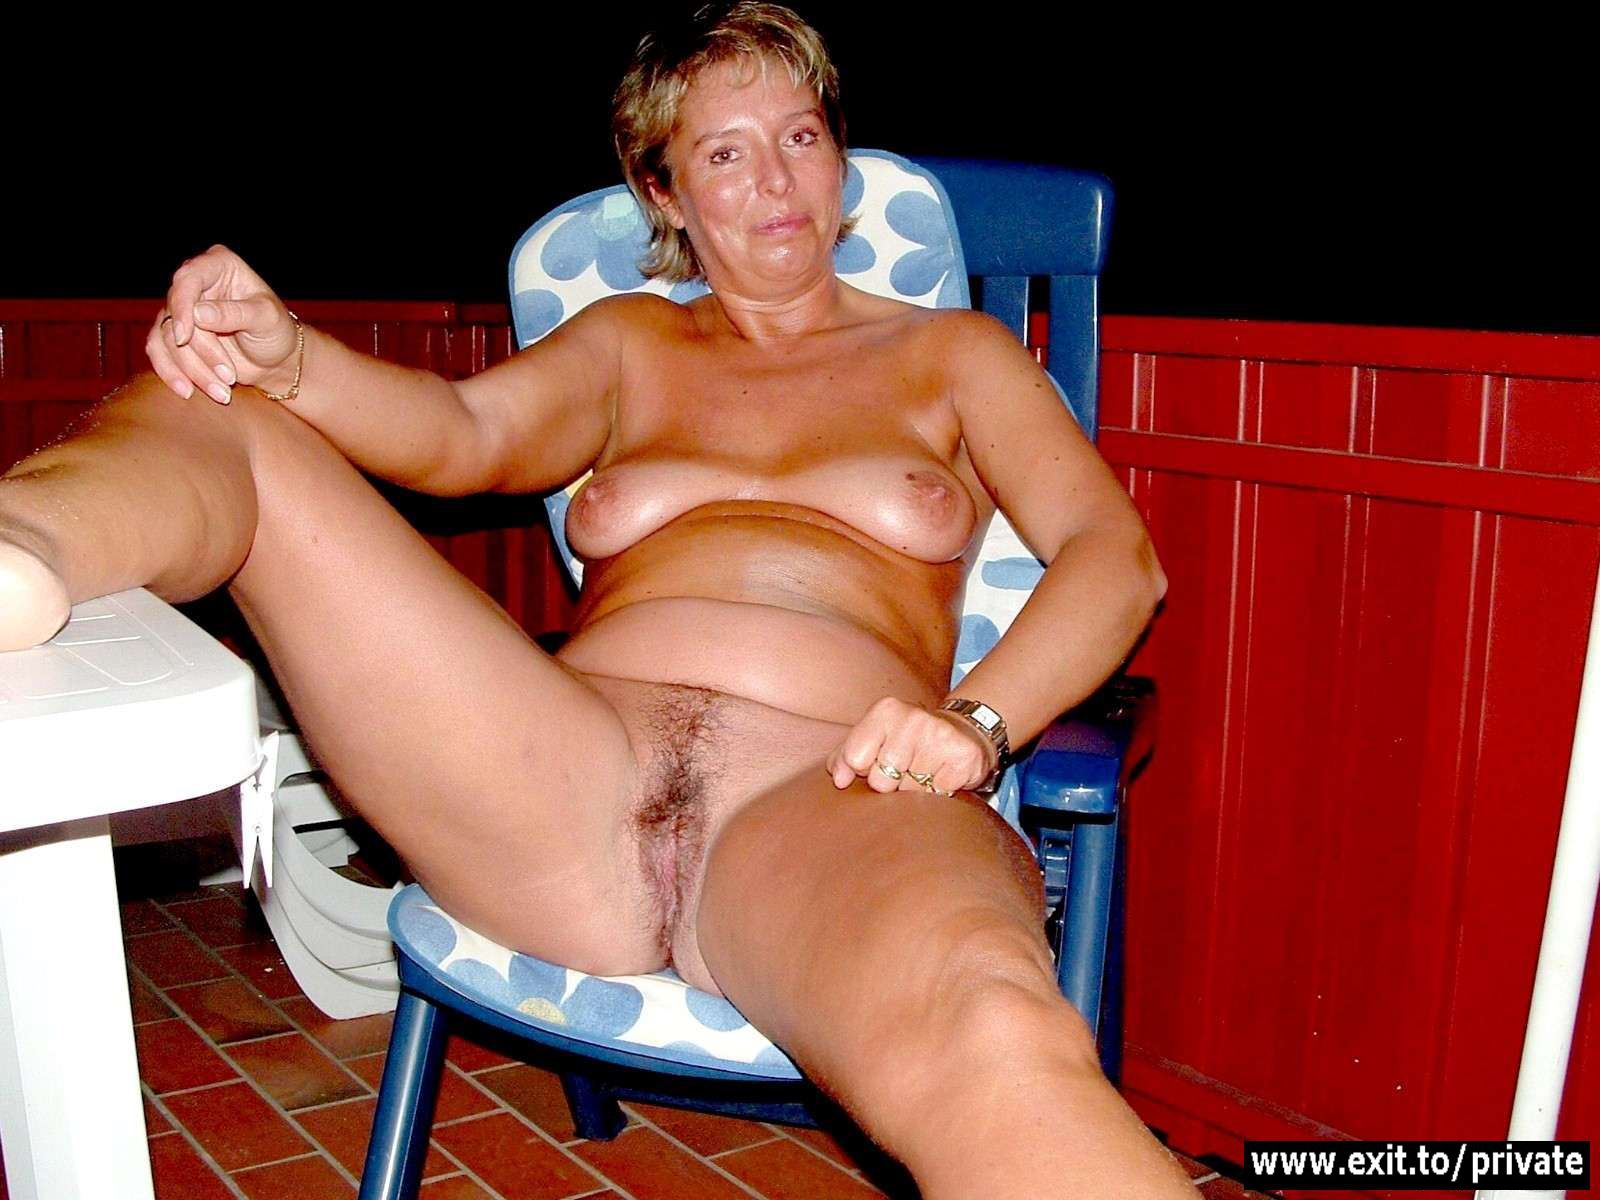 amateur holiday porn with mature wives - free porn pics - photo 12